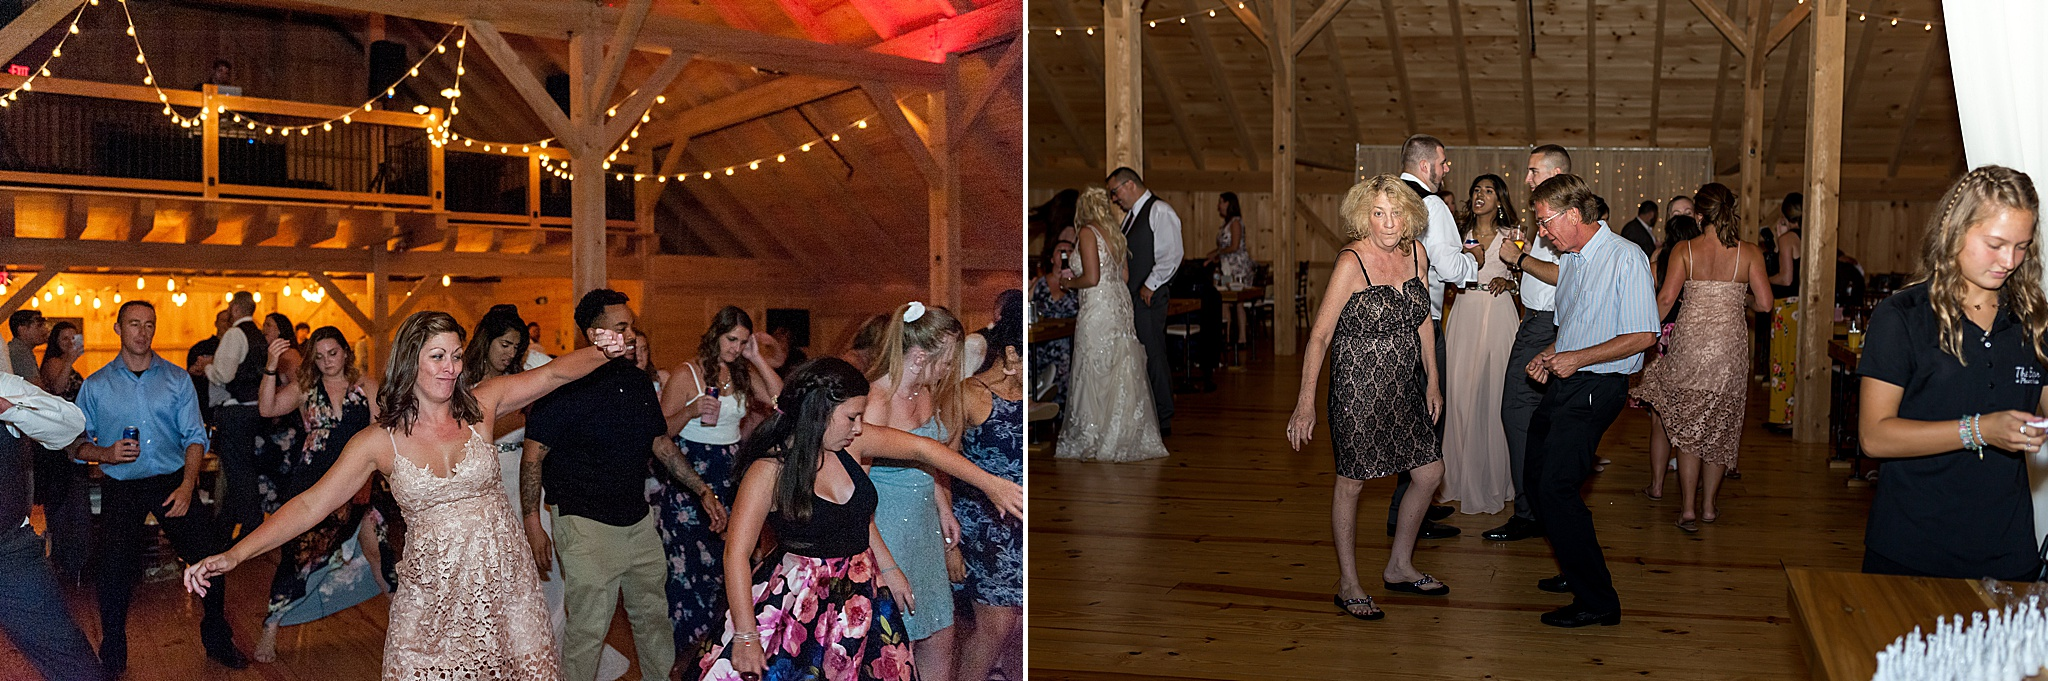 Wendy Zook Photography_Frederick MD wedding photographer__0077.jpg